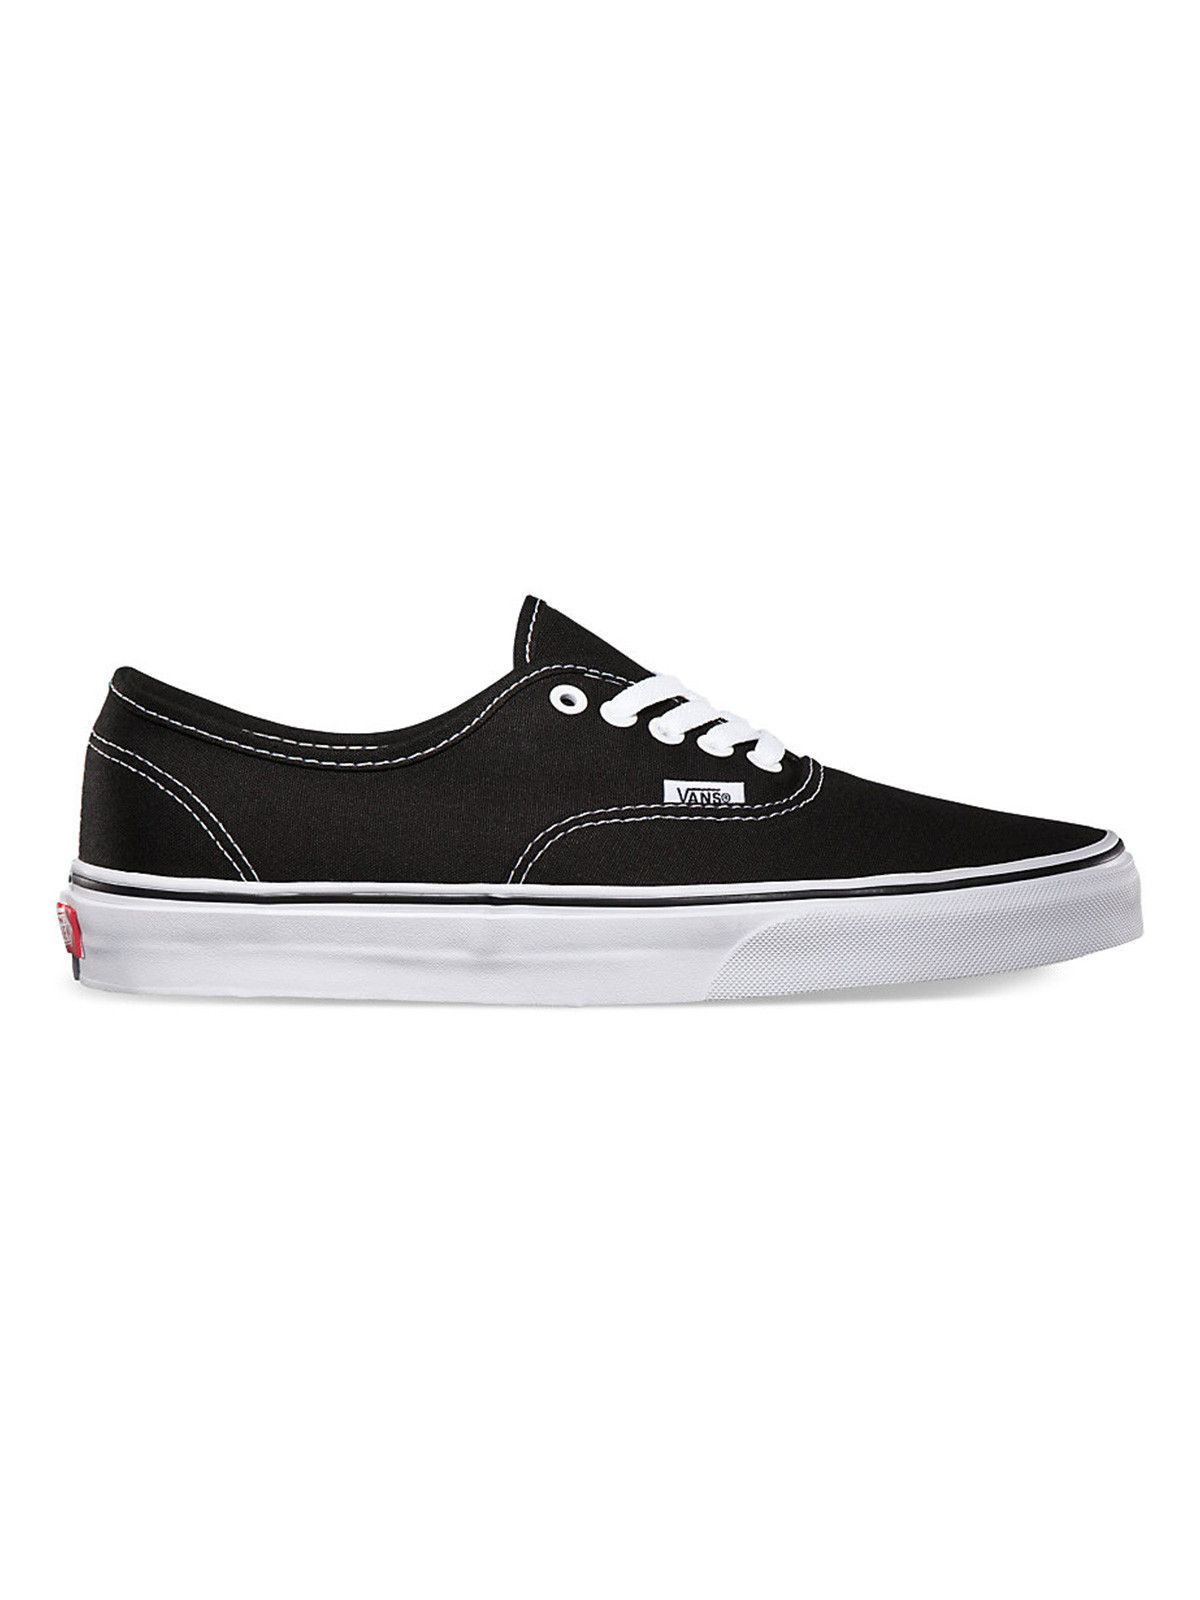 1c9f1c74410a12 Vans Authentic - Black